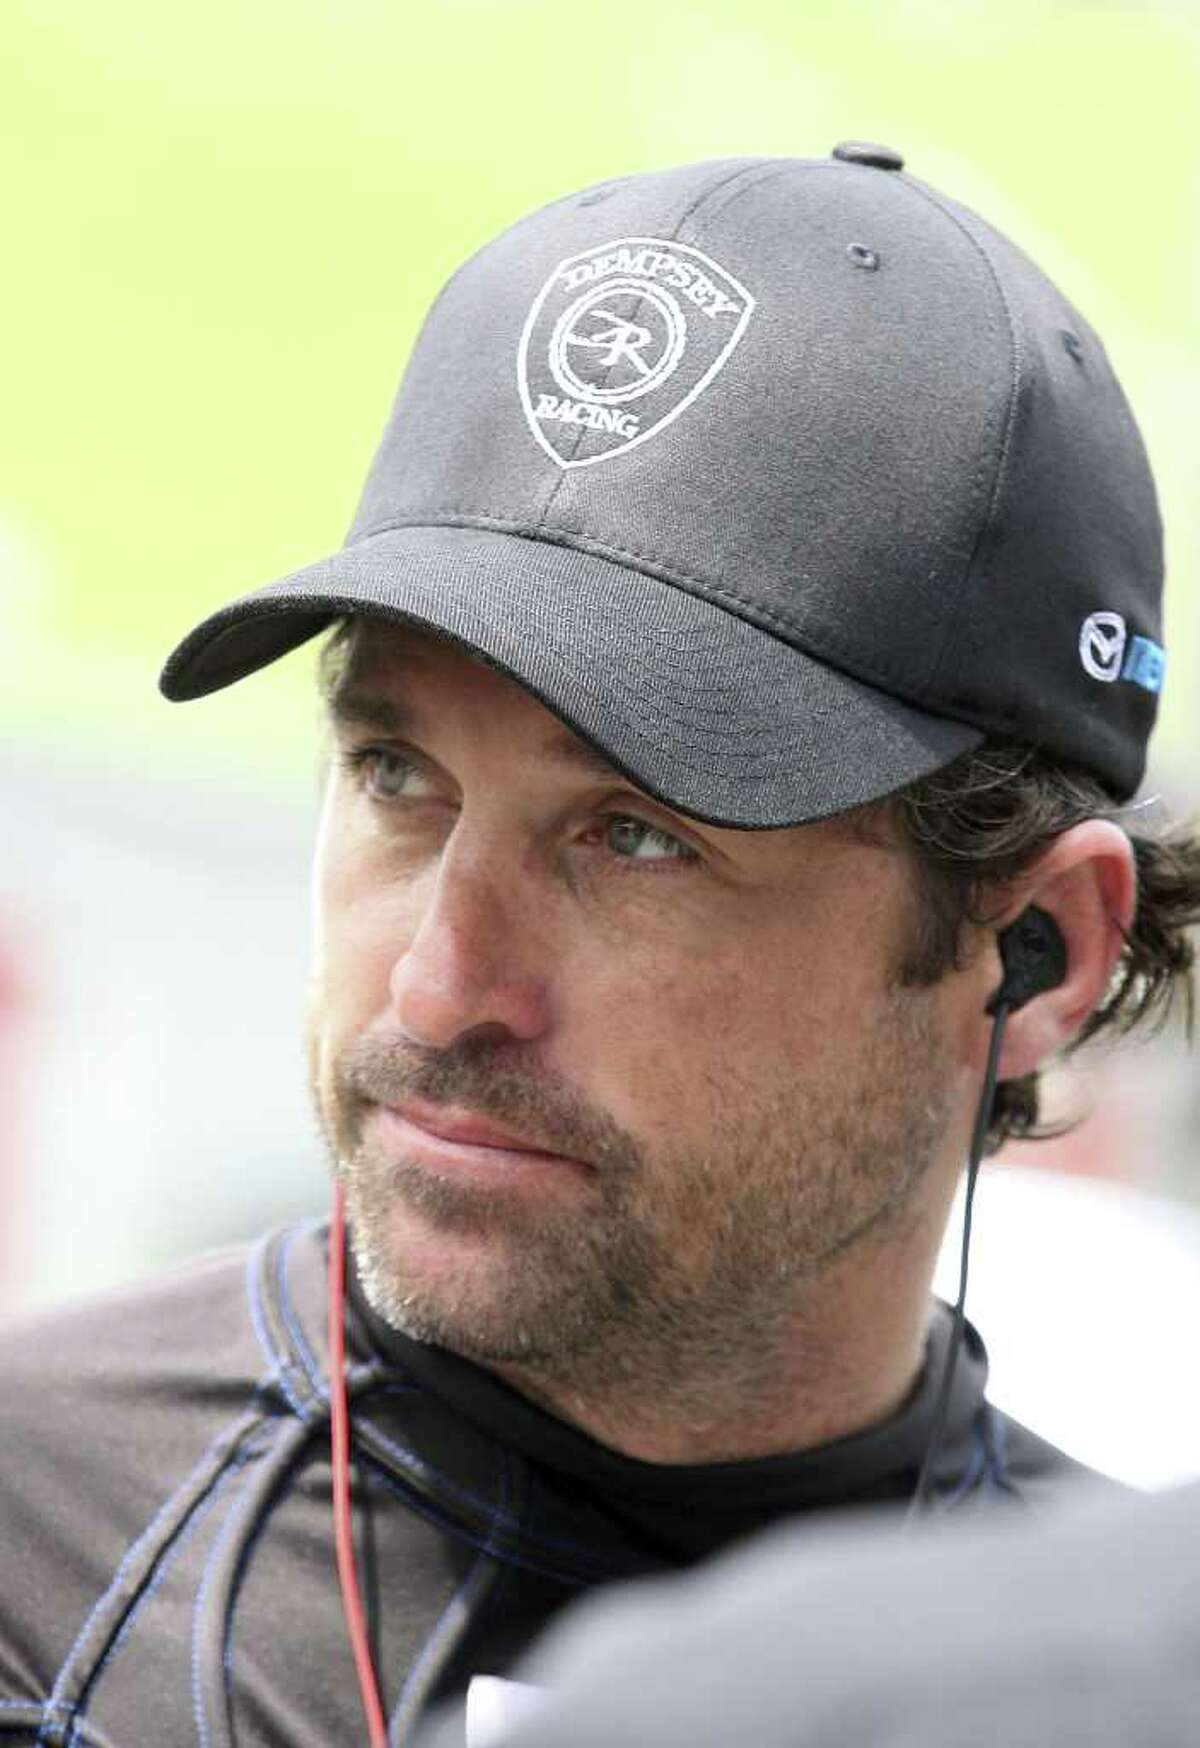 Driver/actor Patrick Dempsey stands in the pits before the Memorial Day Classic Grand-Am Rolex Series race at Lime Rock Park in Lakeville, Connecticut.